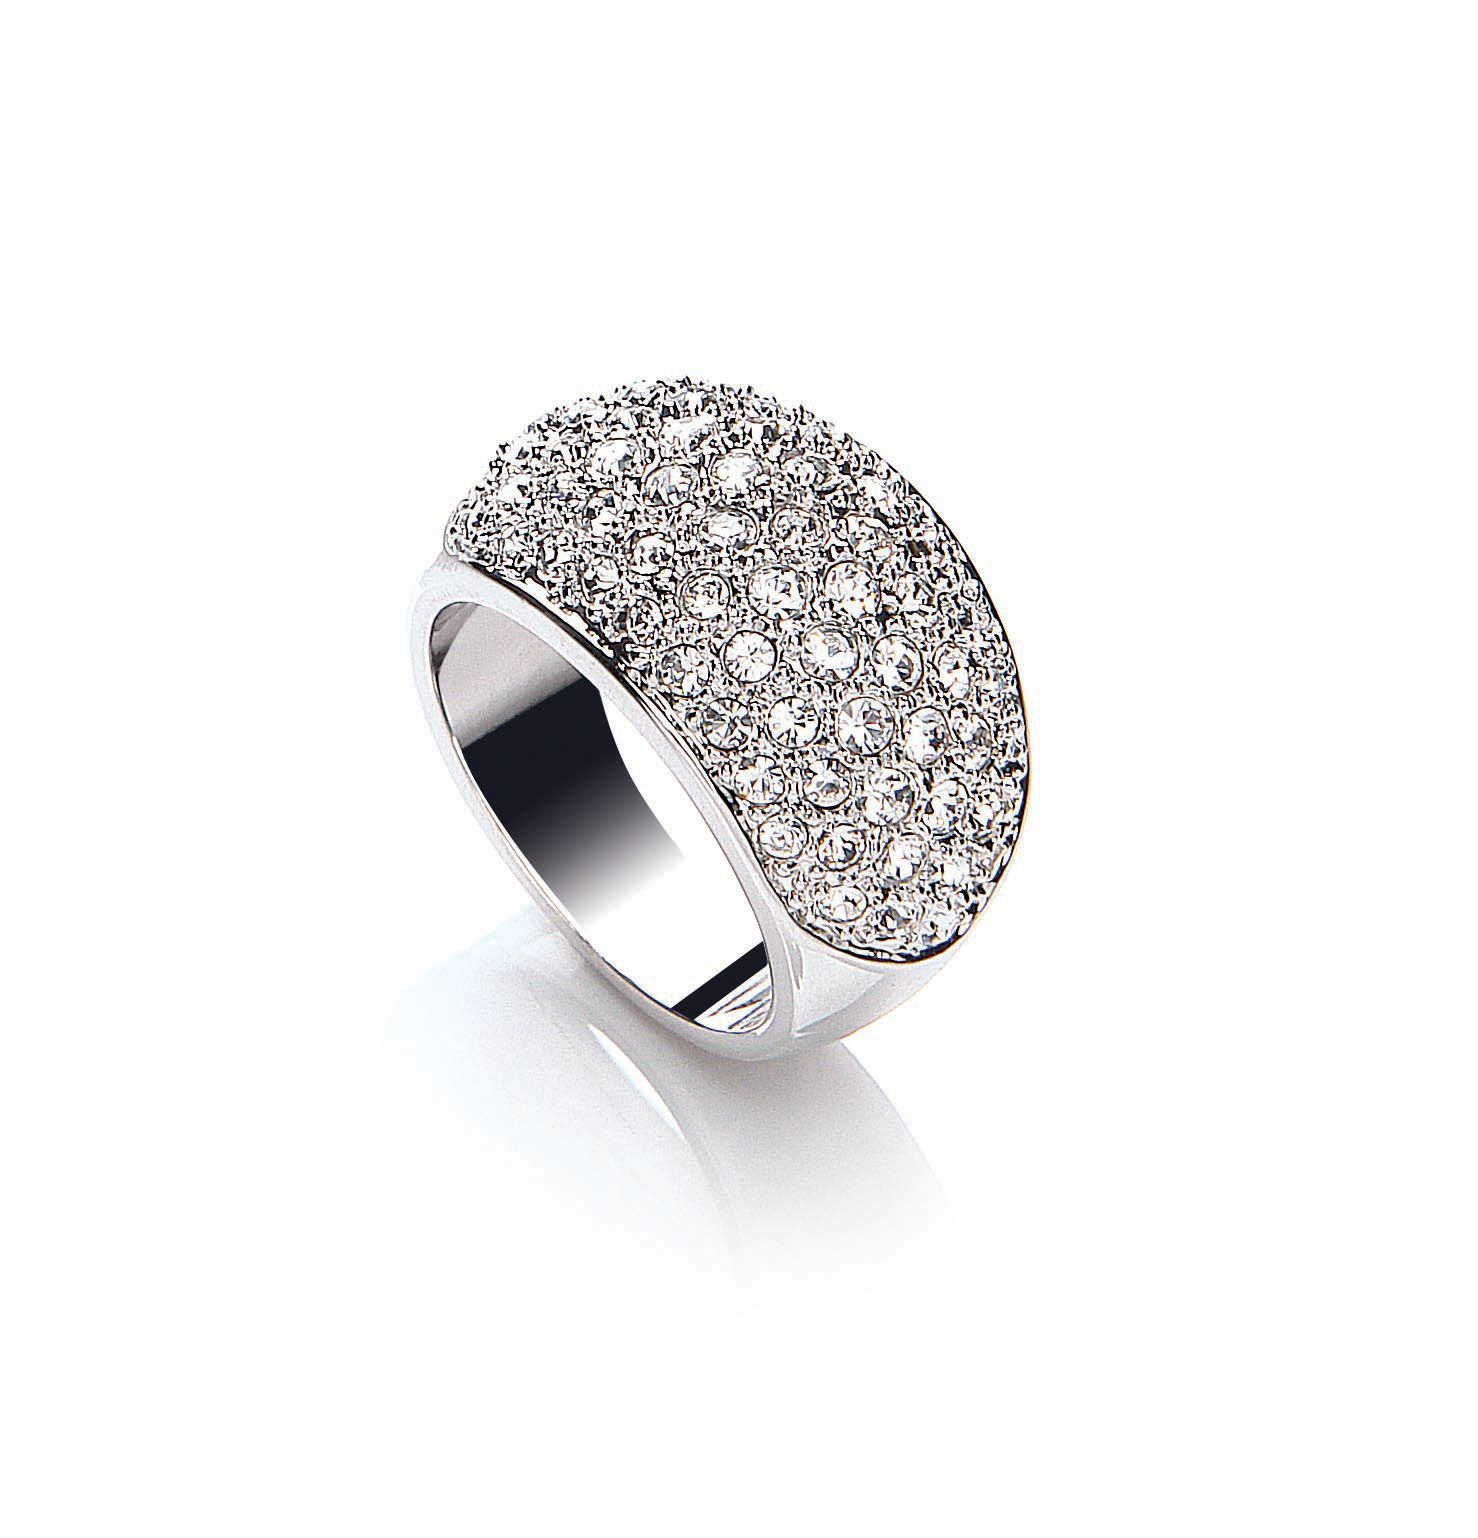 buckley london chunky ring